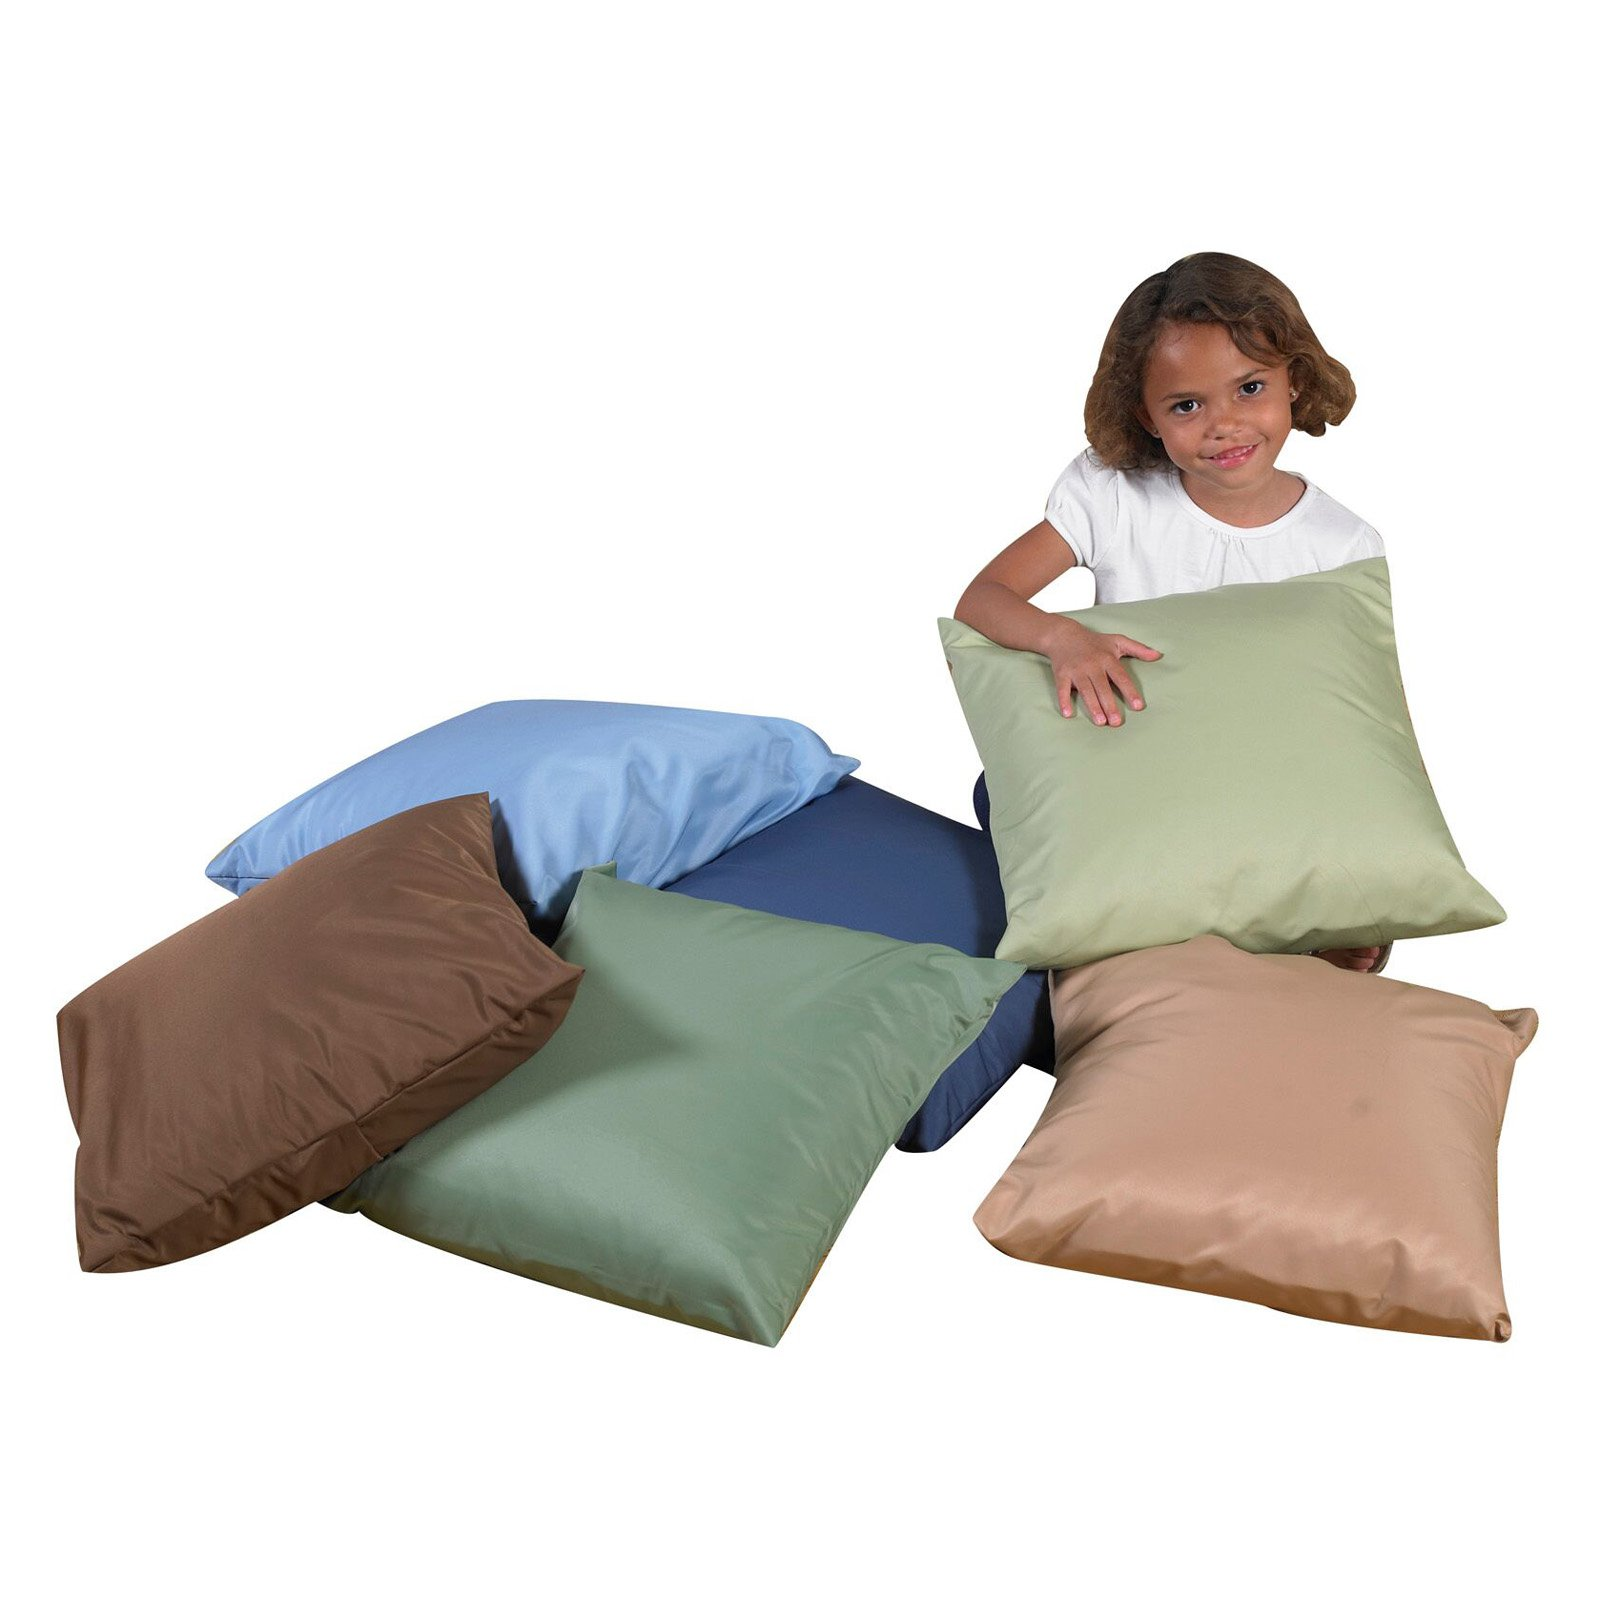 Childrens Factory Kids Pillows Set of 6 by Children's Factory